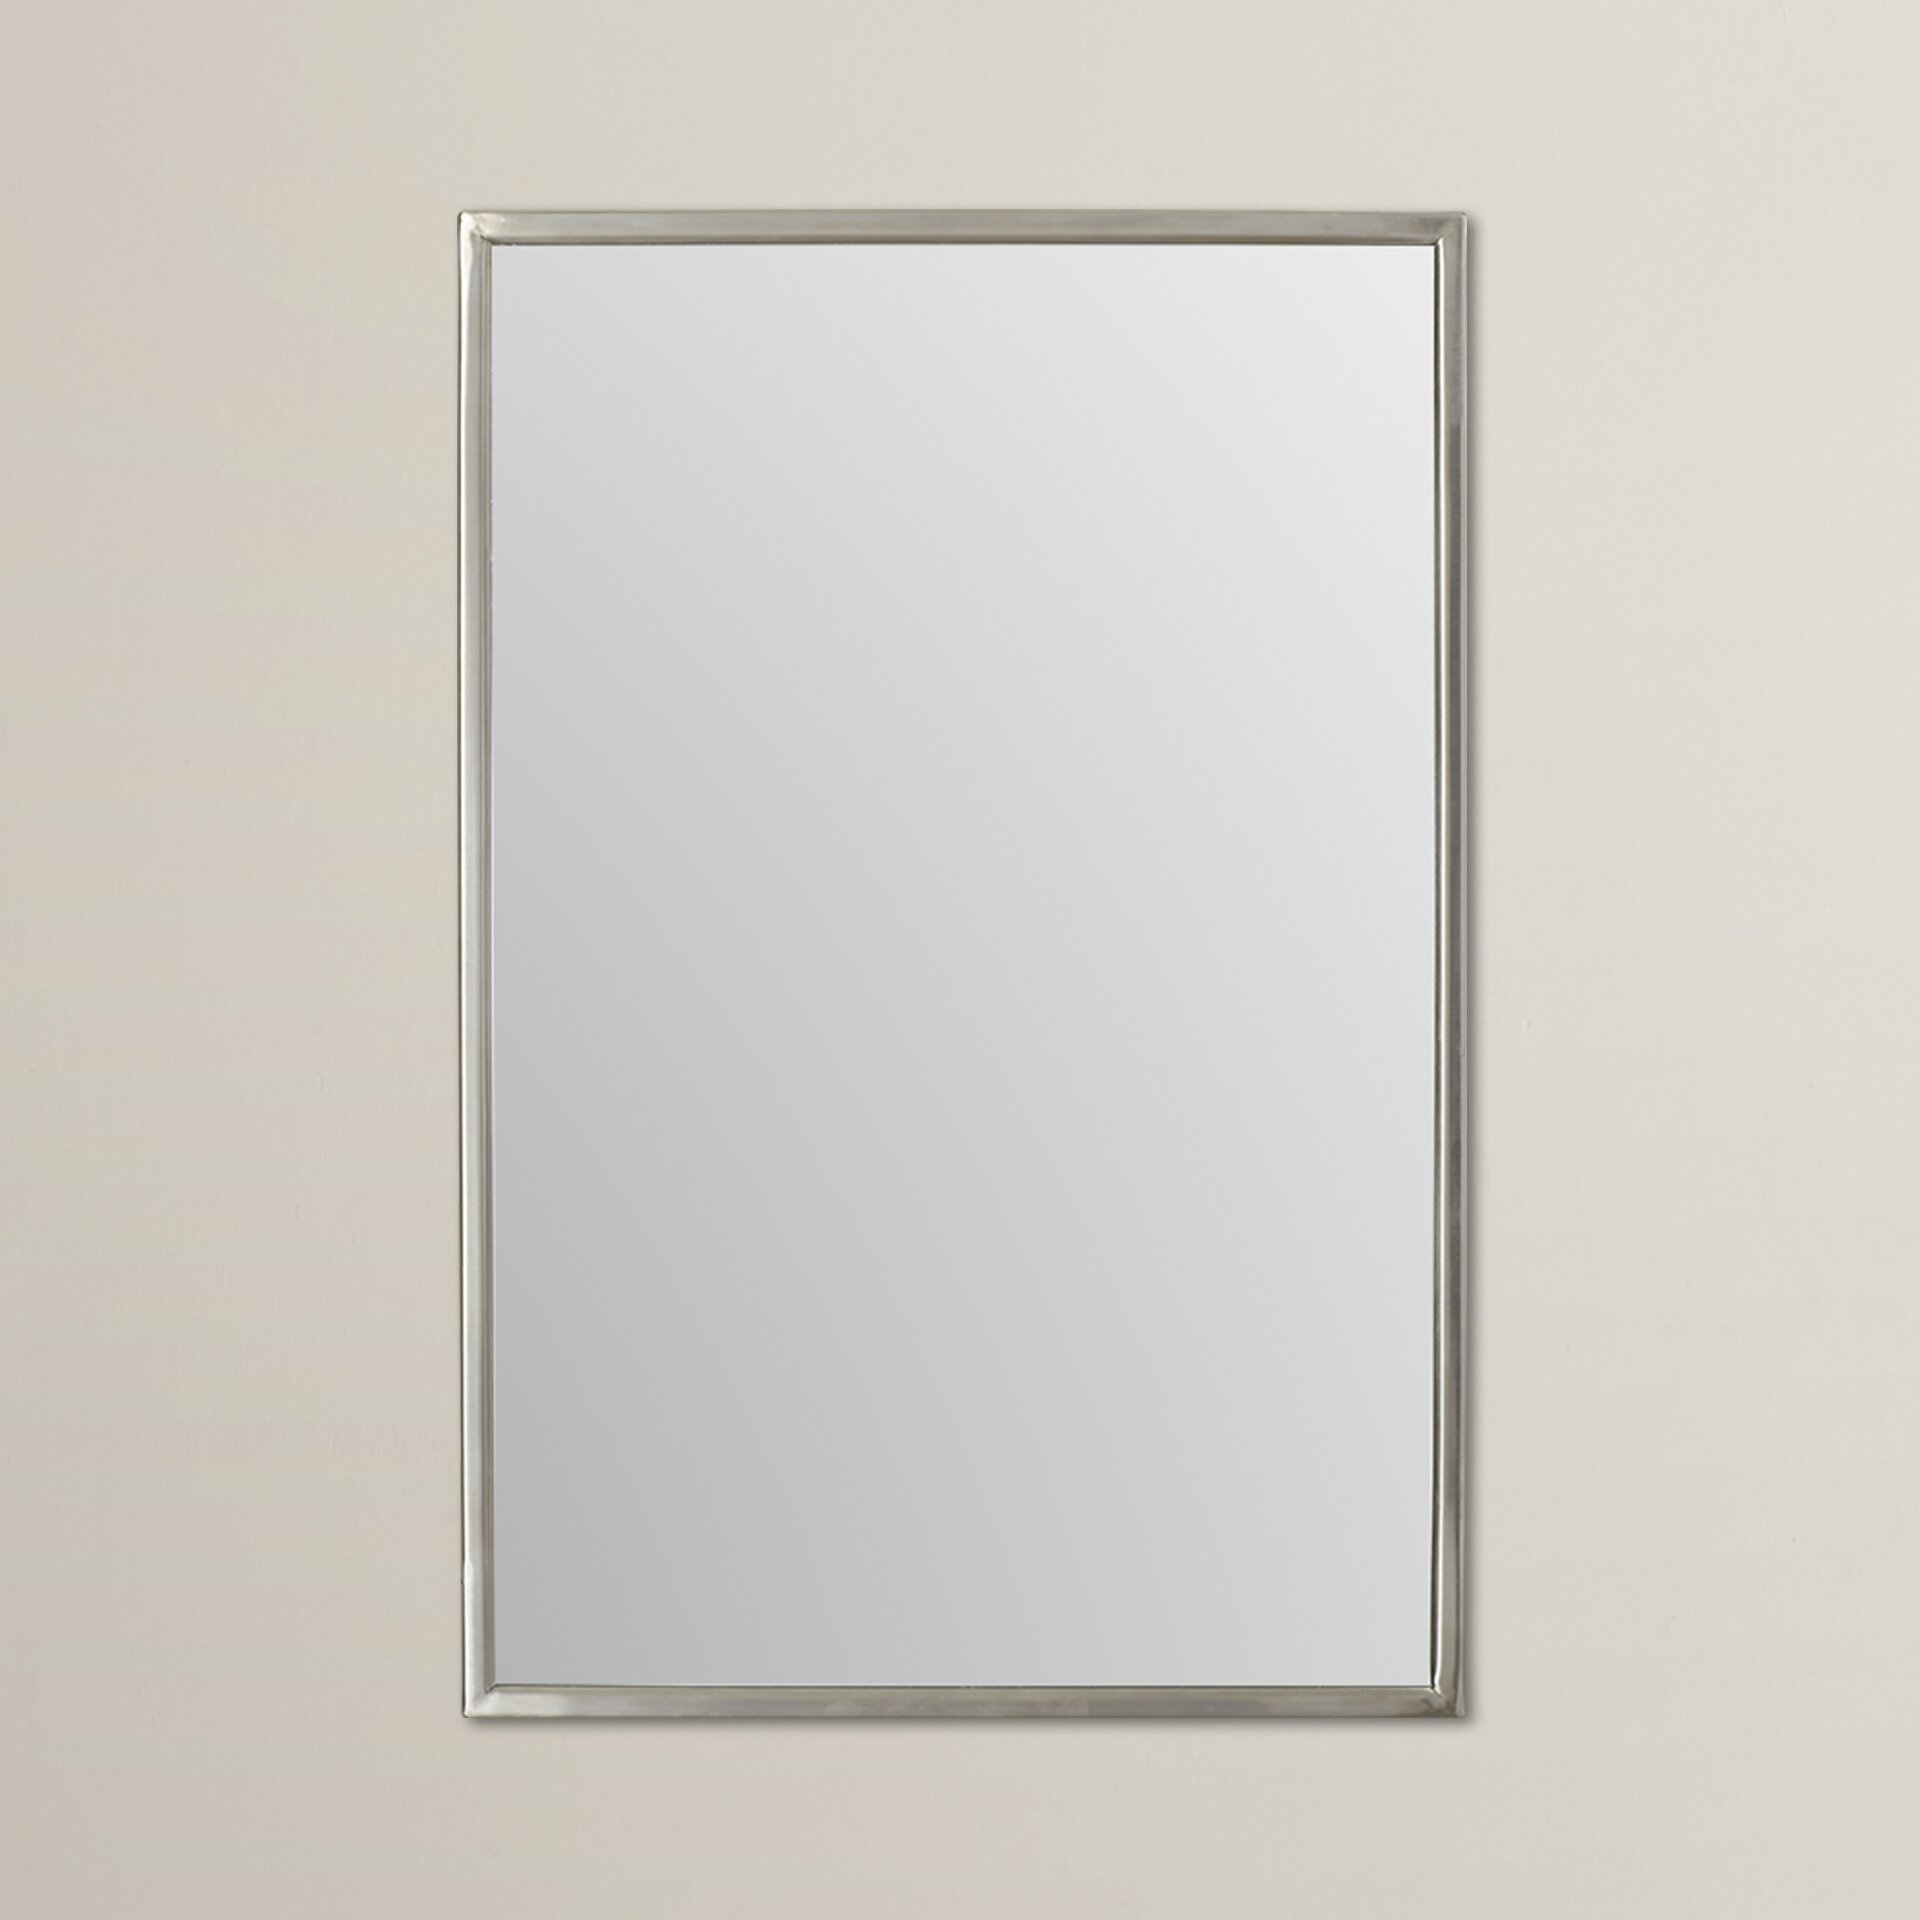 Varick Gallery Ewell Angle Frame Wall Mirror Reviews